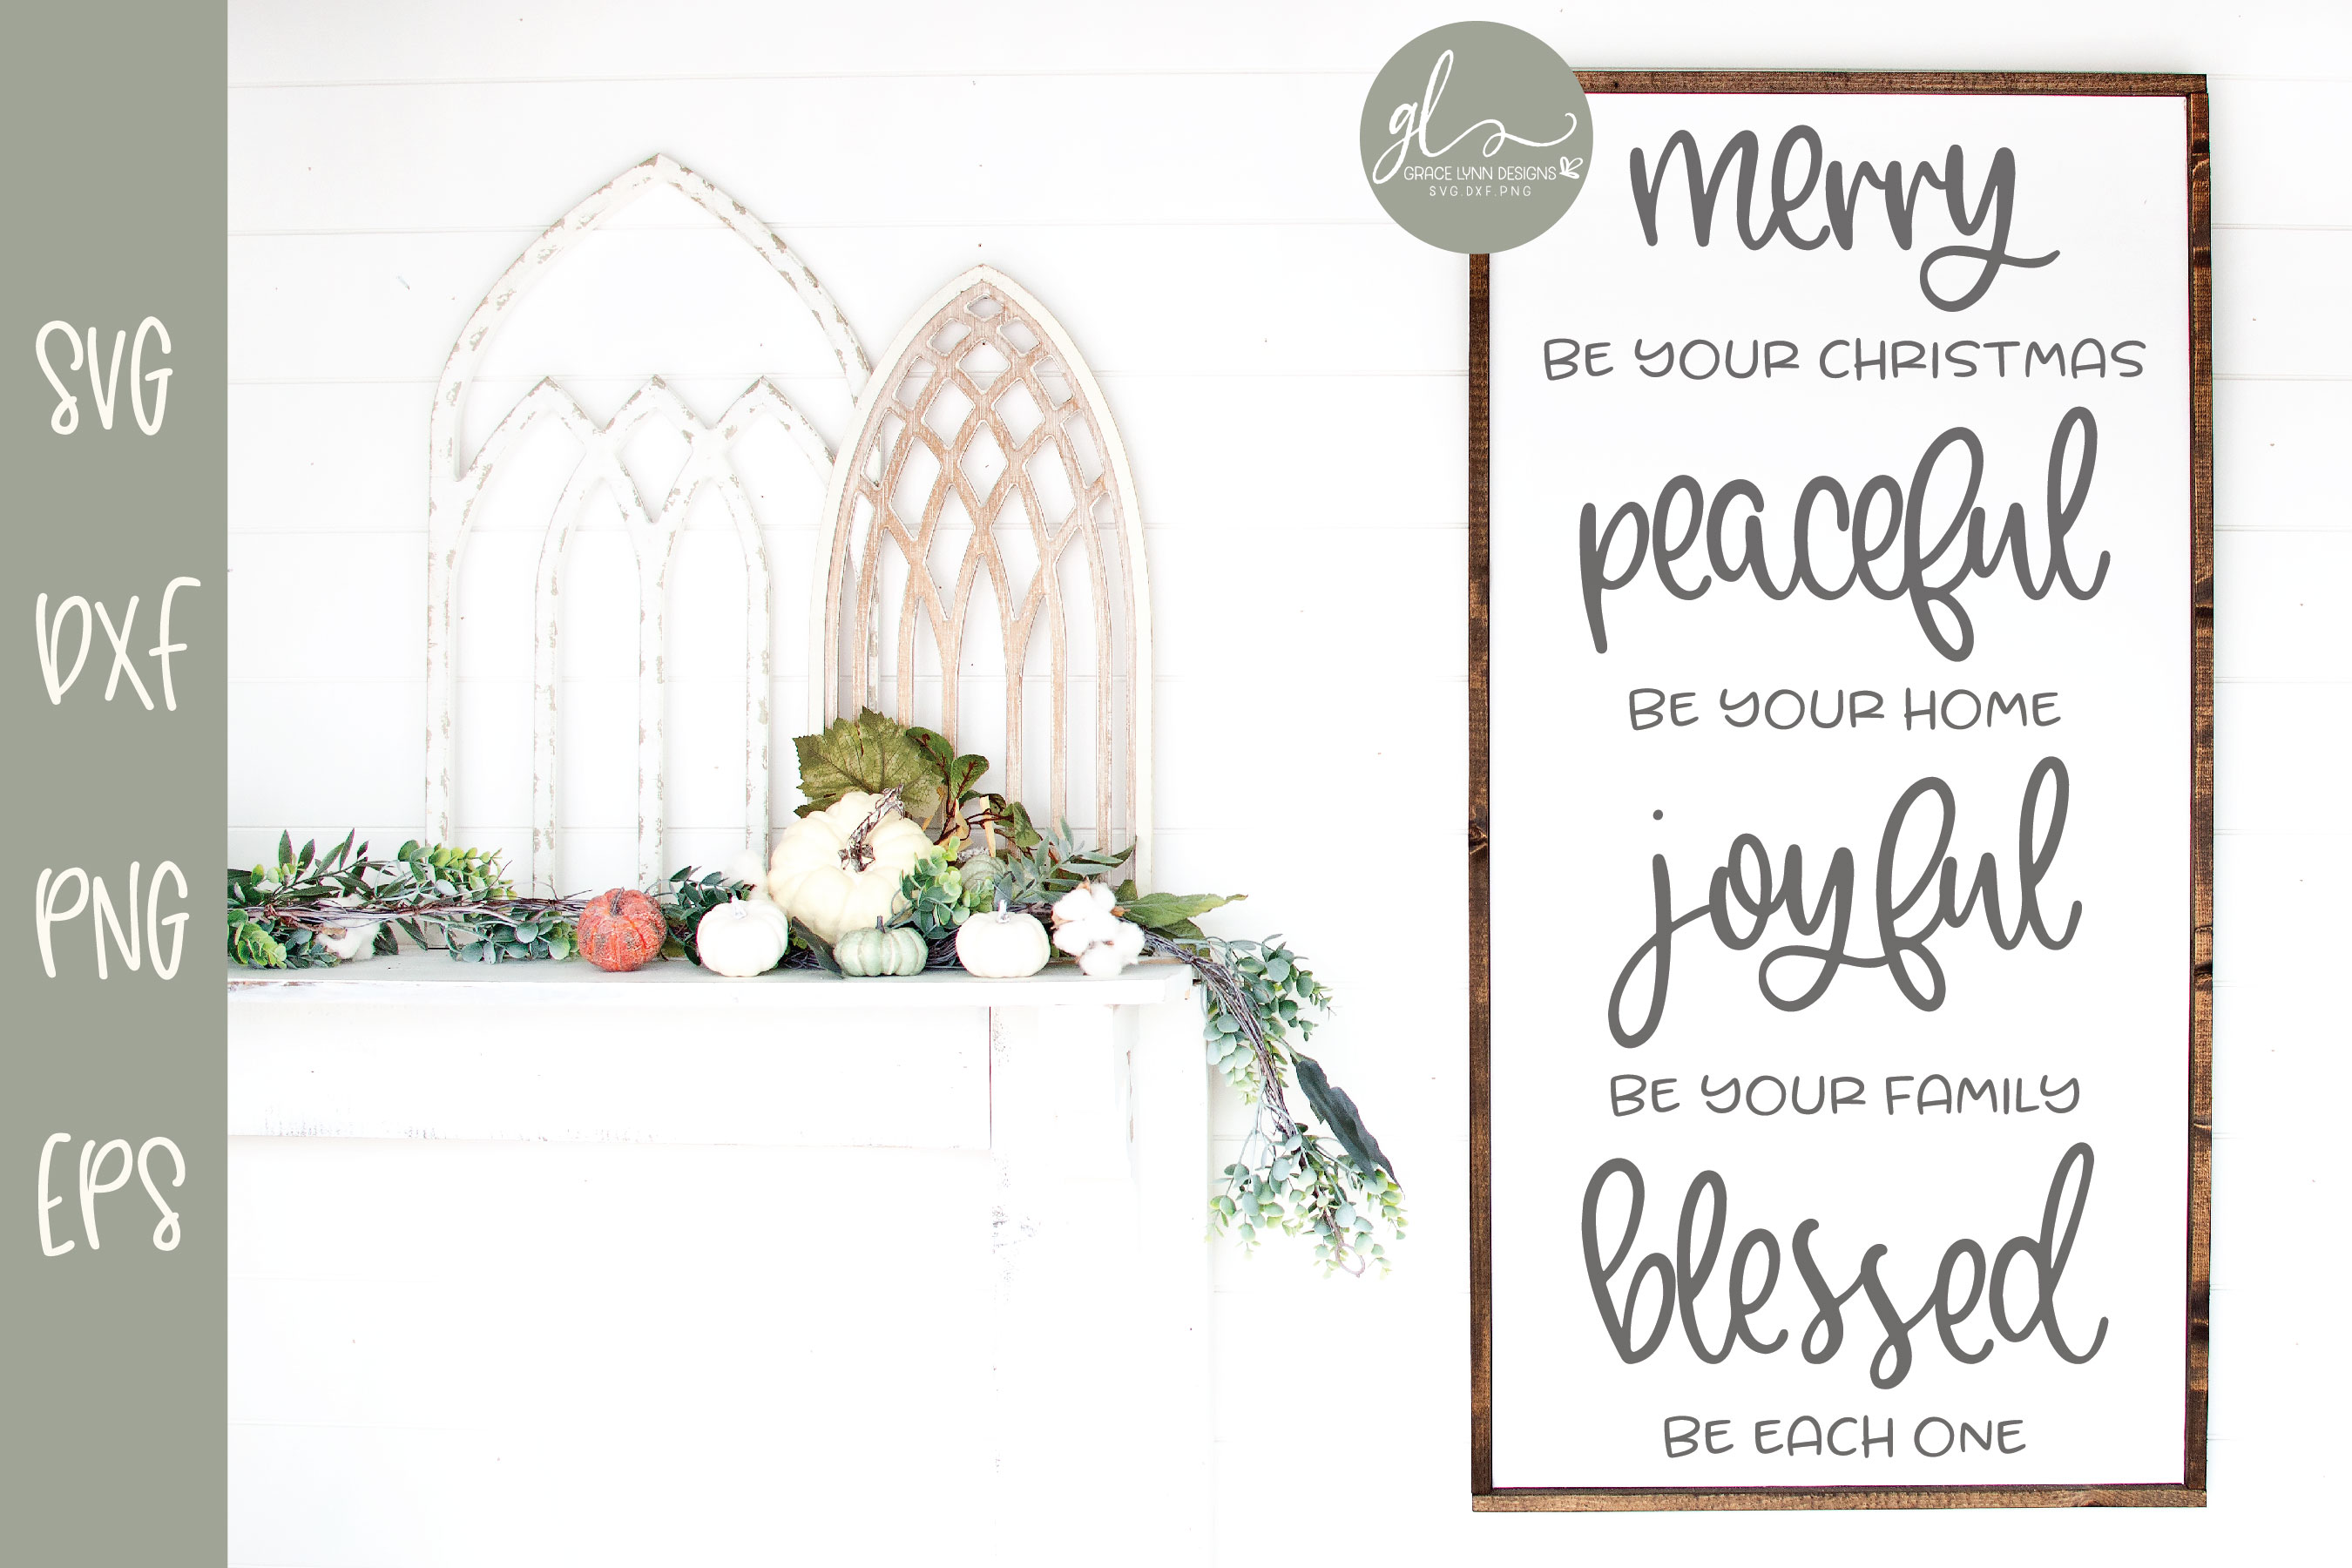 Merry Be Your Christmas Peaceful Be Your Home - SVG example image 1